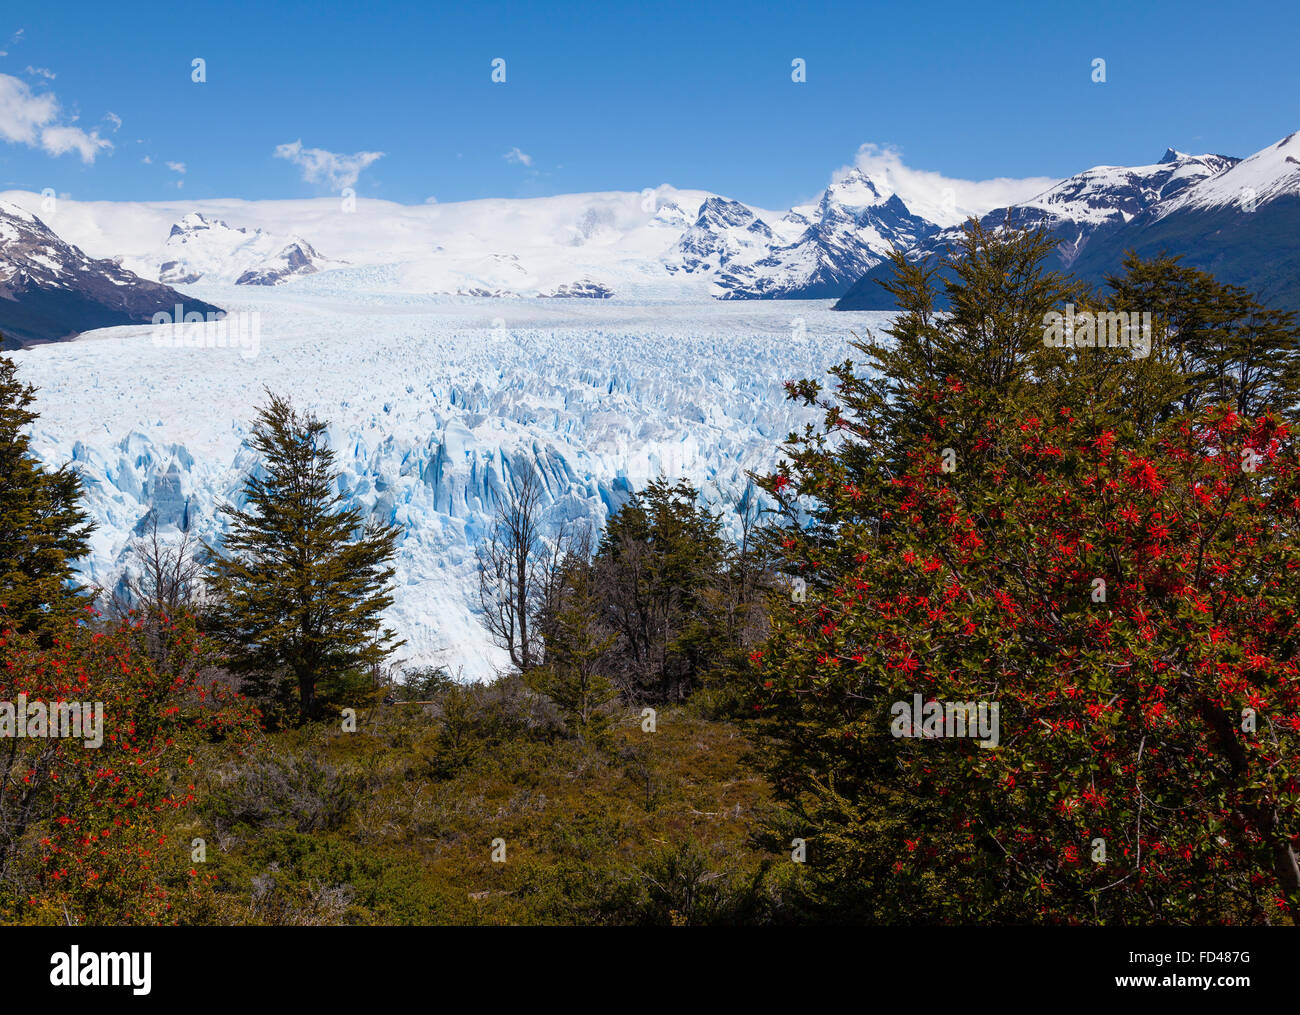 Moreno glacier with fire bush shrub, Patagonia, Argentina - Stock Image